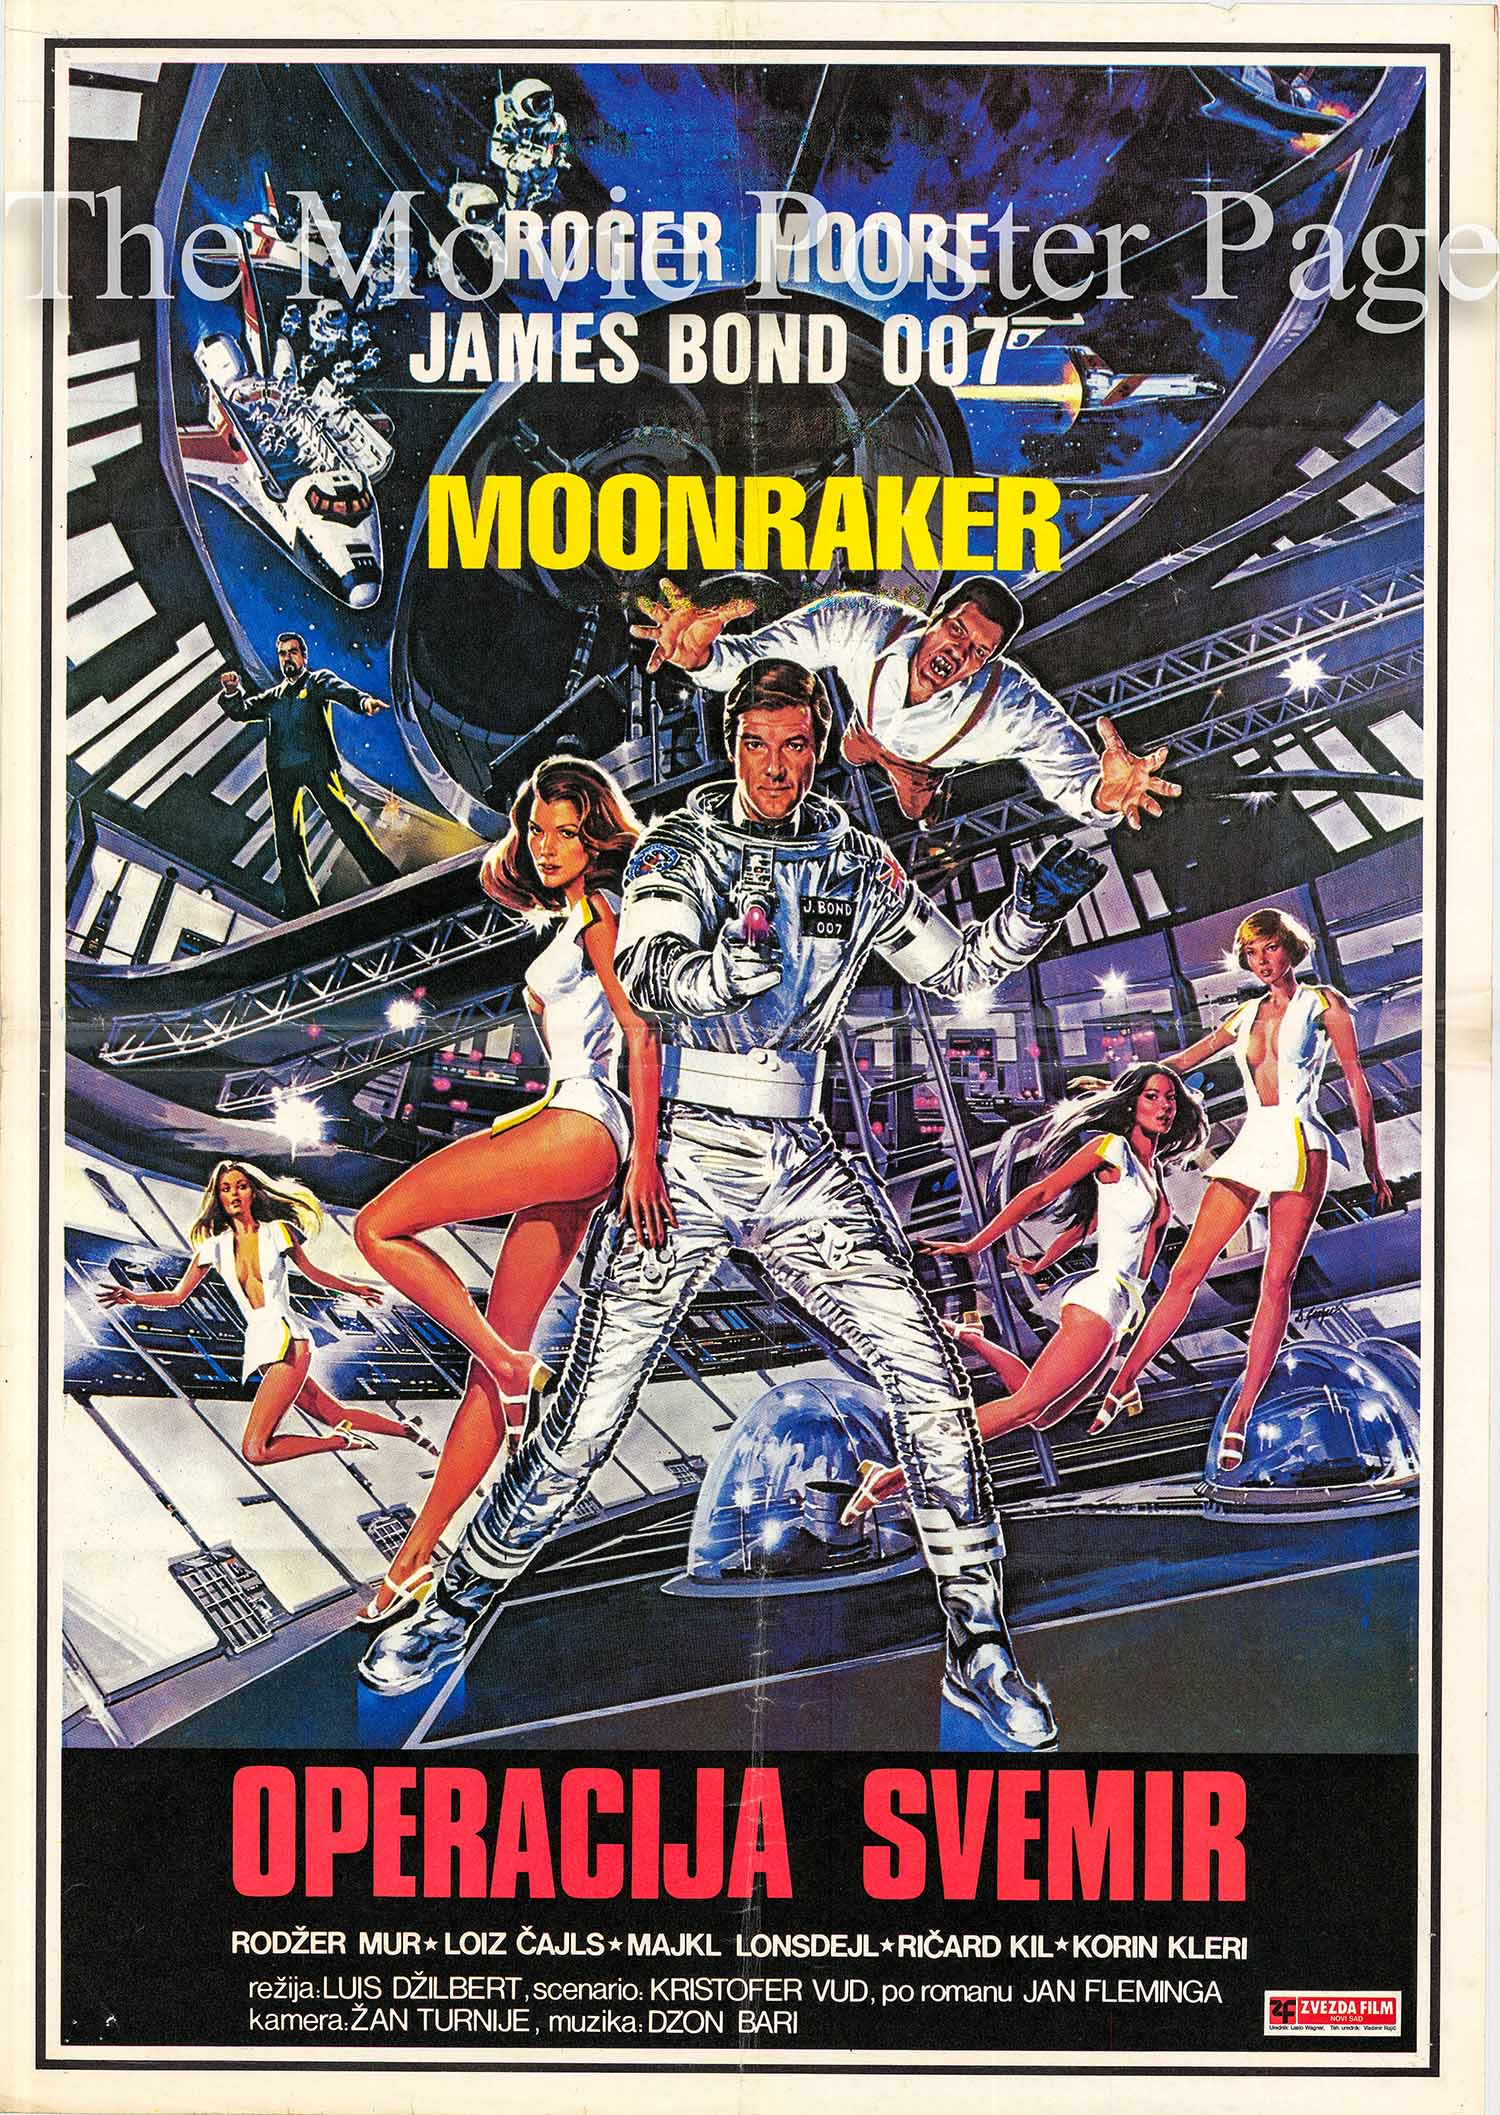 Pictured is a Yugoslavian promotional poster for the 1979 Lewis Gilbert film Moonraker starring Roger Moore as James Bond.